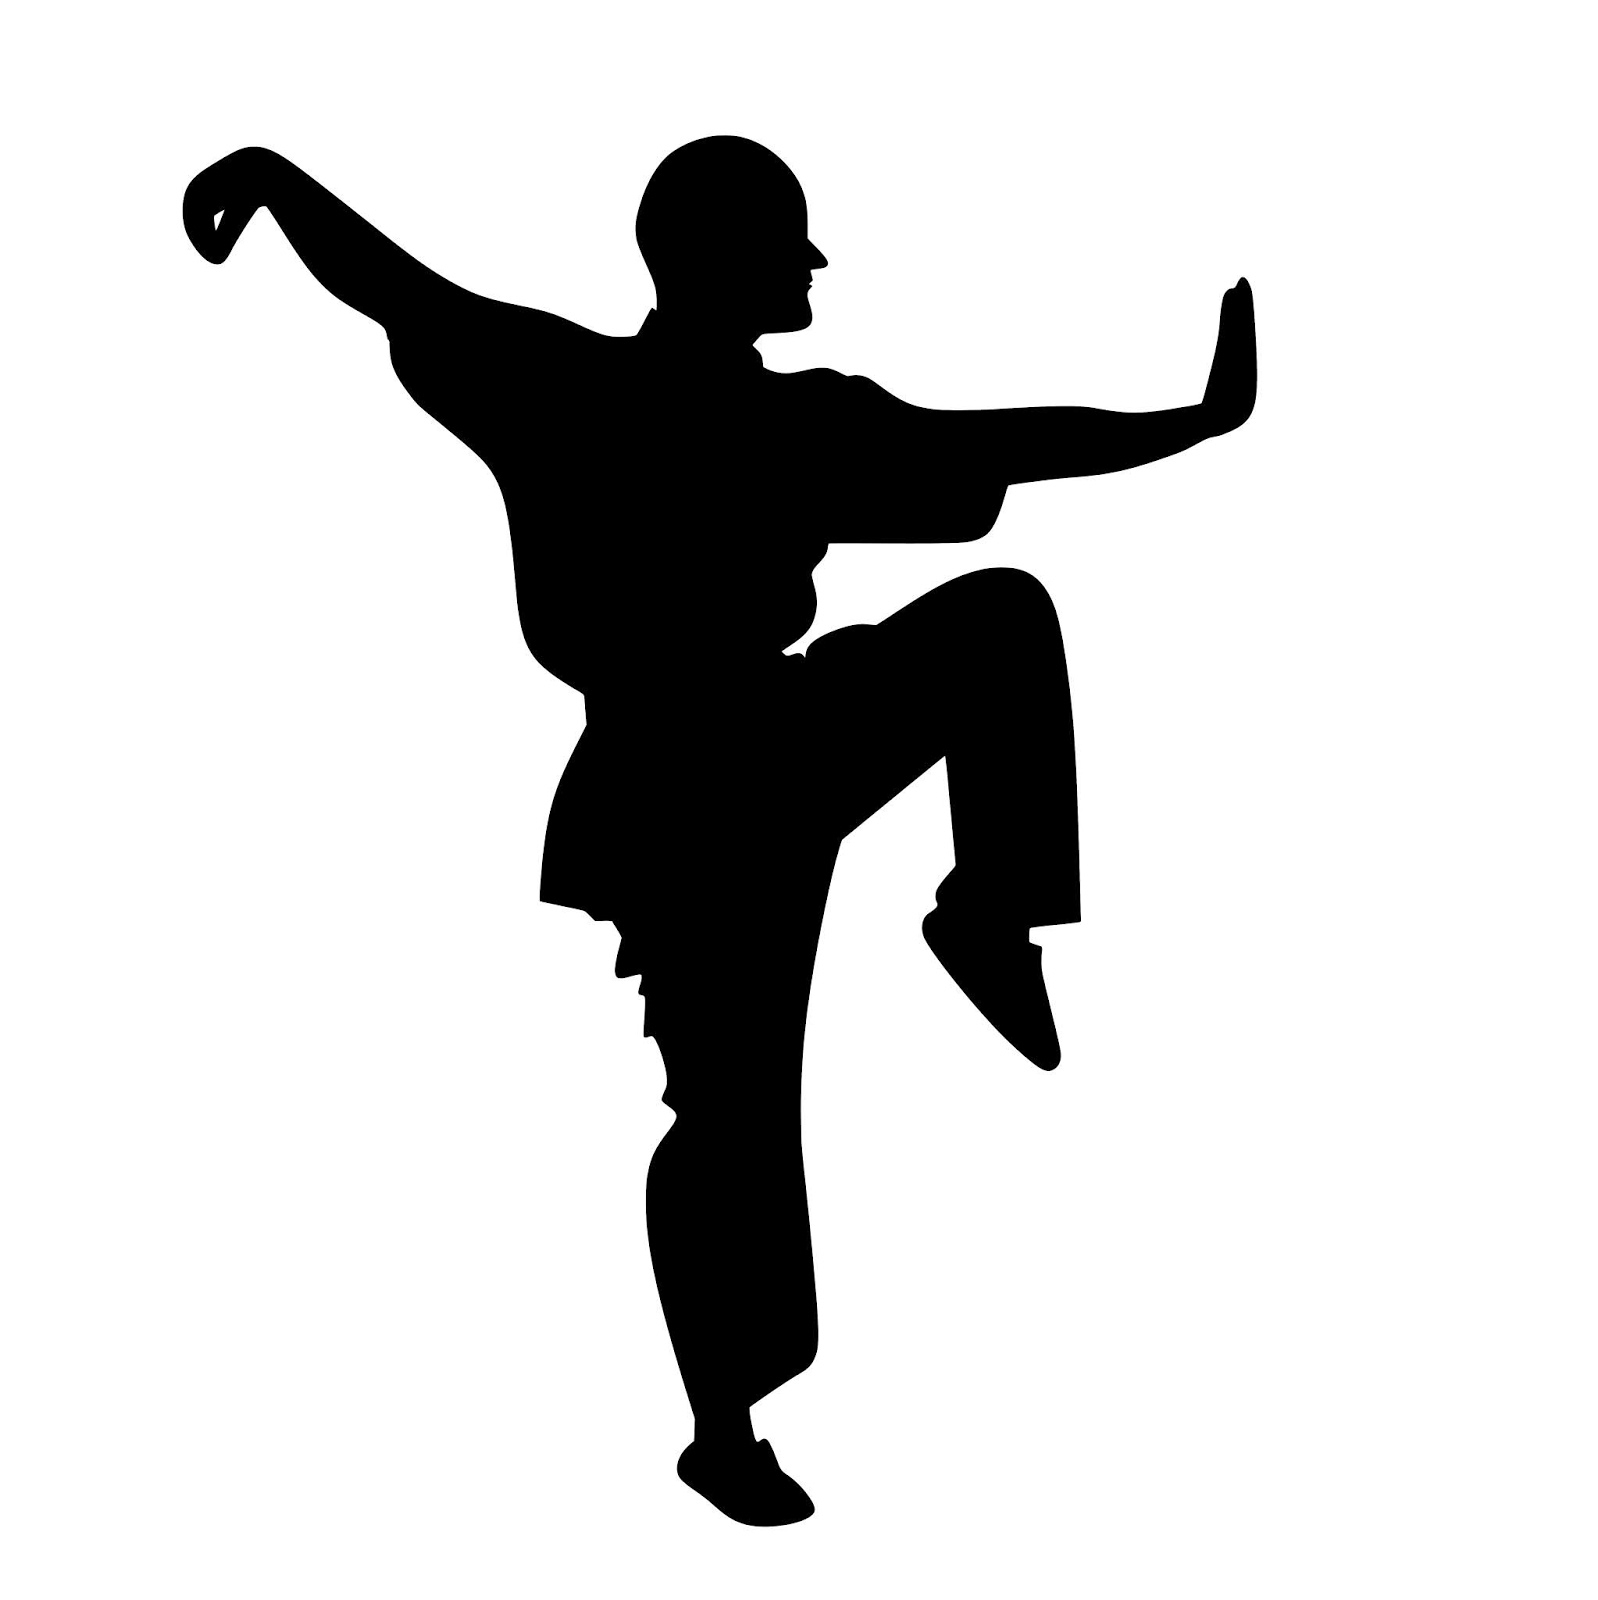 Illustration of Kung Fu pose silhouette